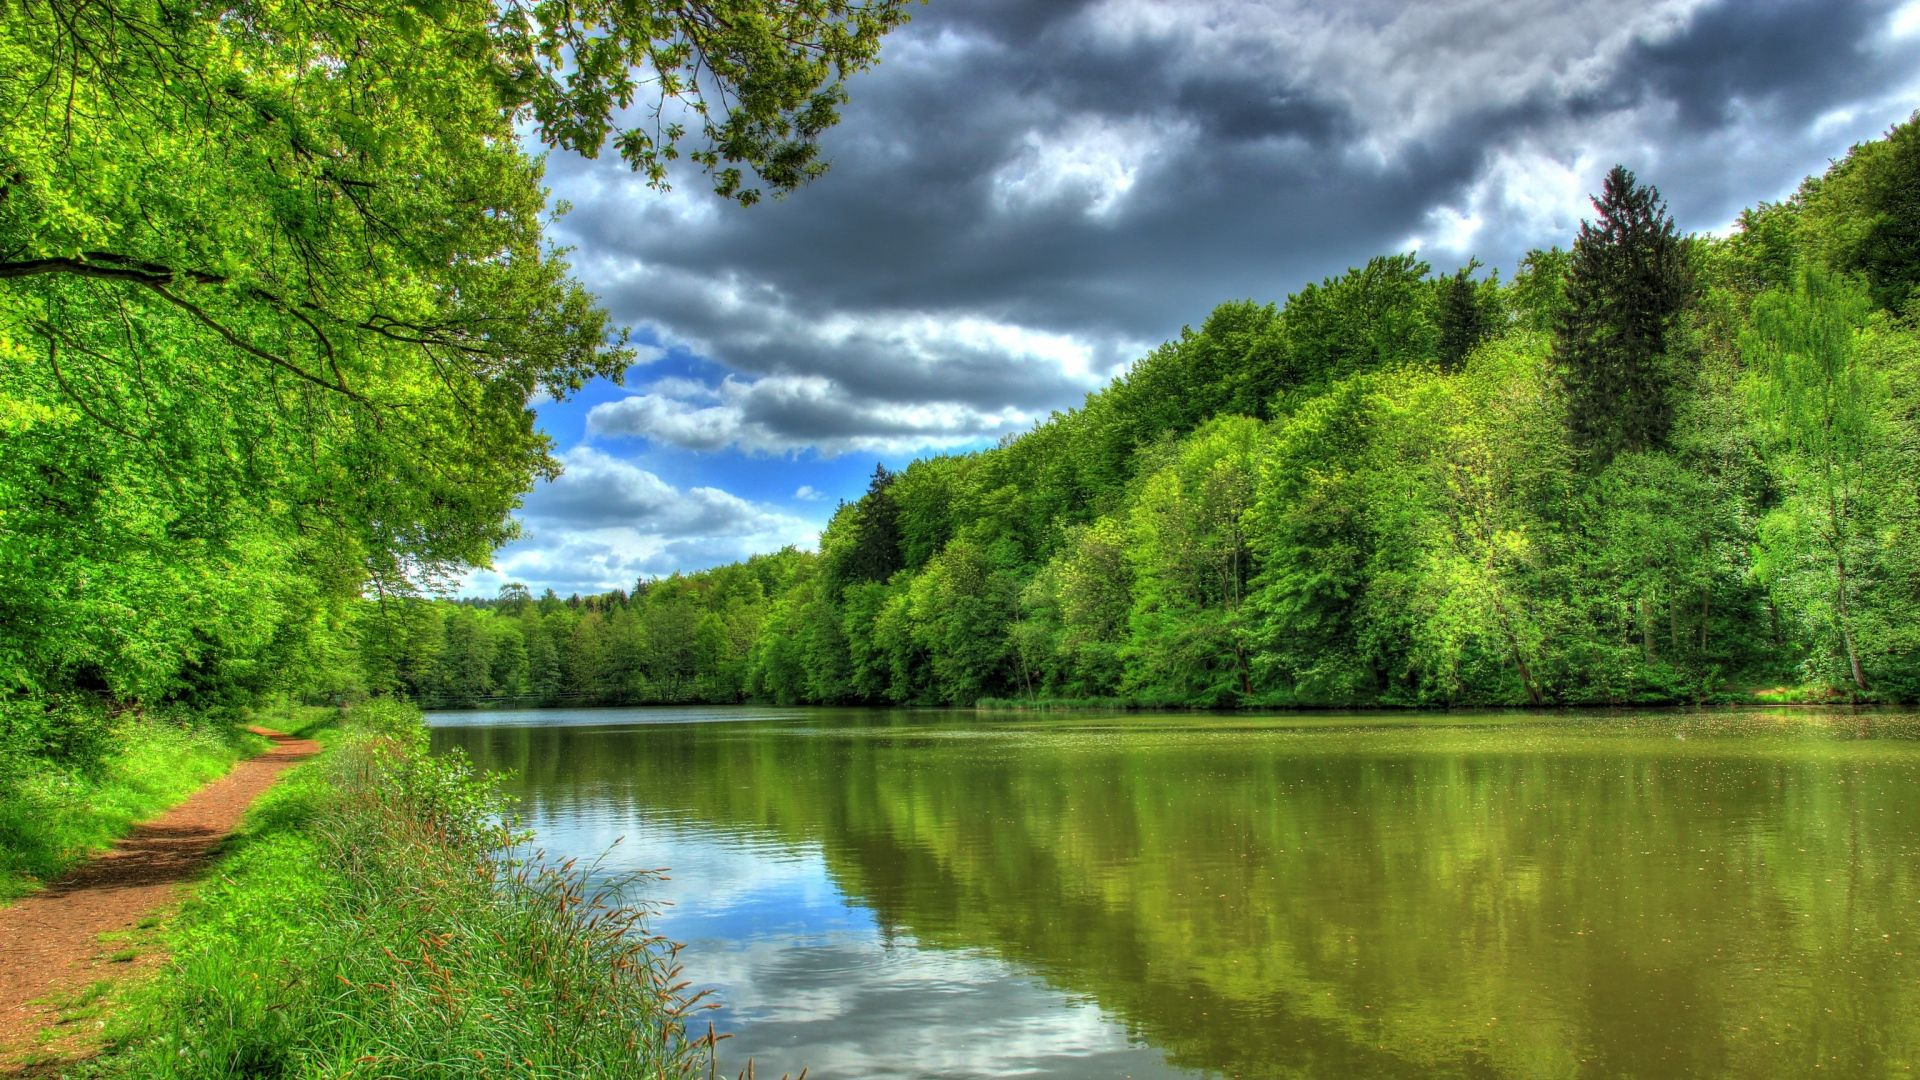 Hd wallpaper river - Hd Gorgeous Wallpapers Nature And Landscape Wallpaper For Windows Pinterest Landscaping And Wallpaper